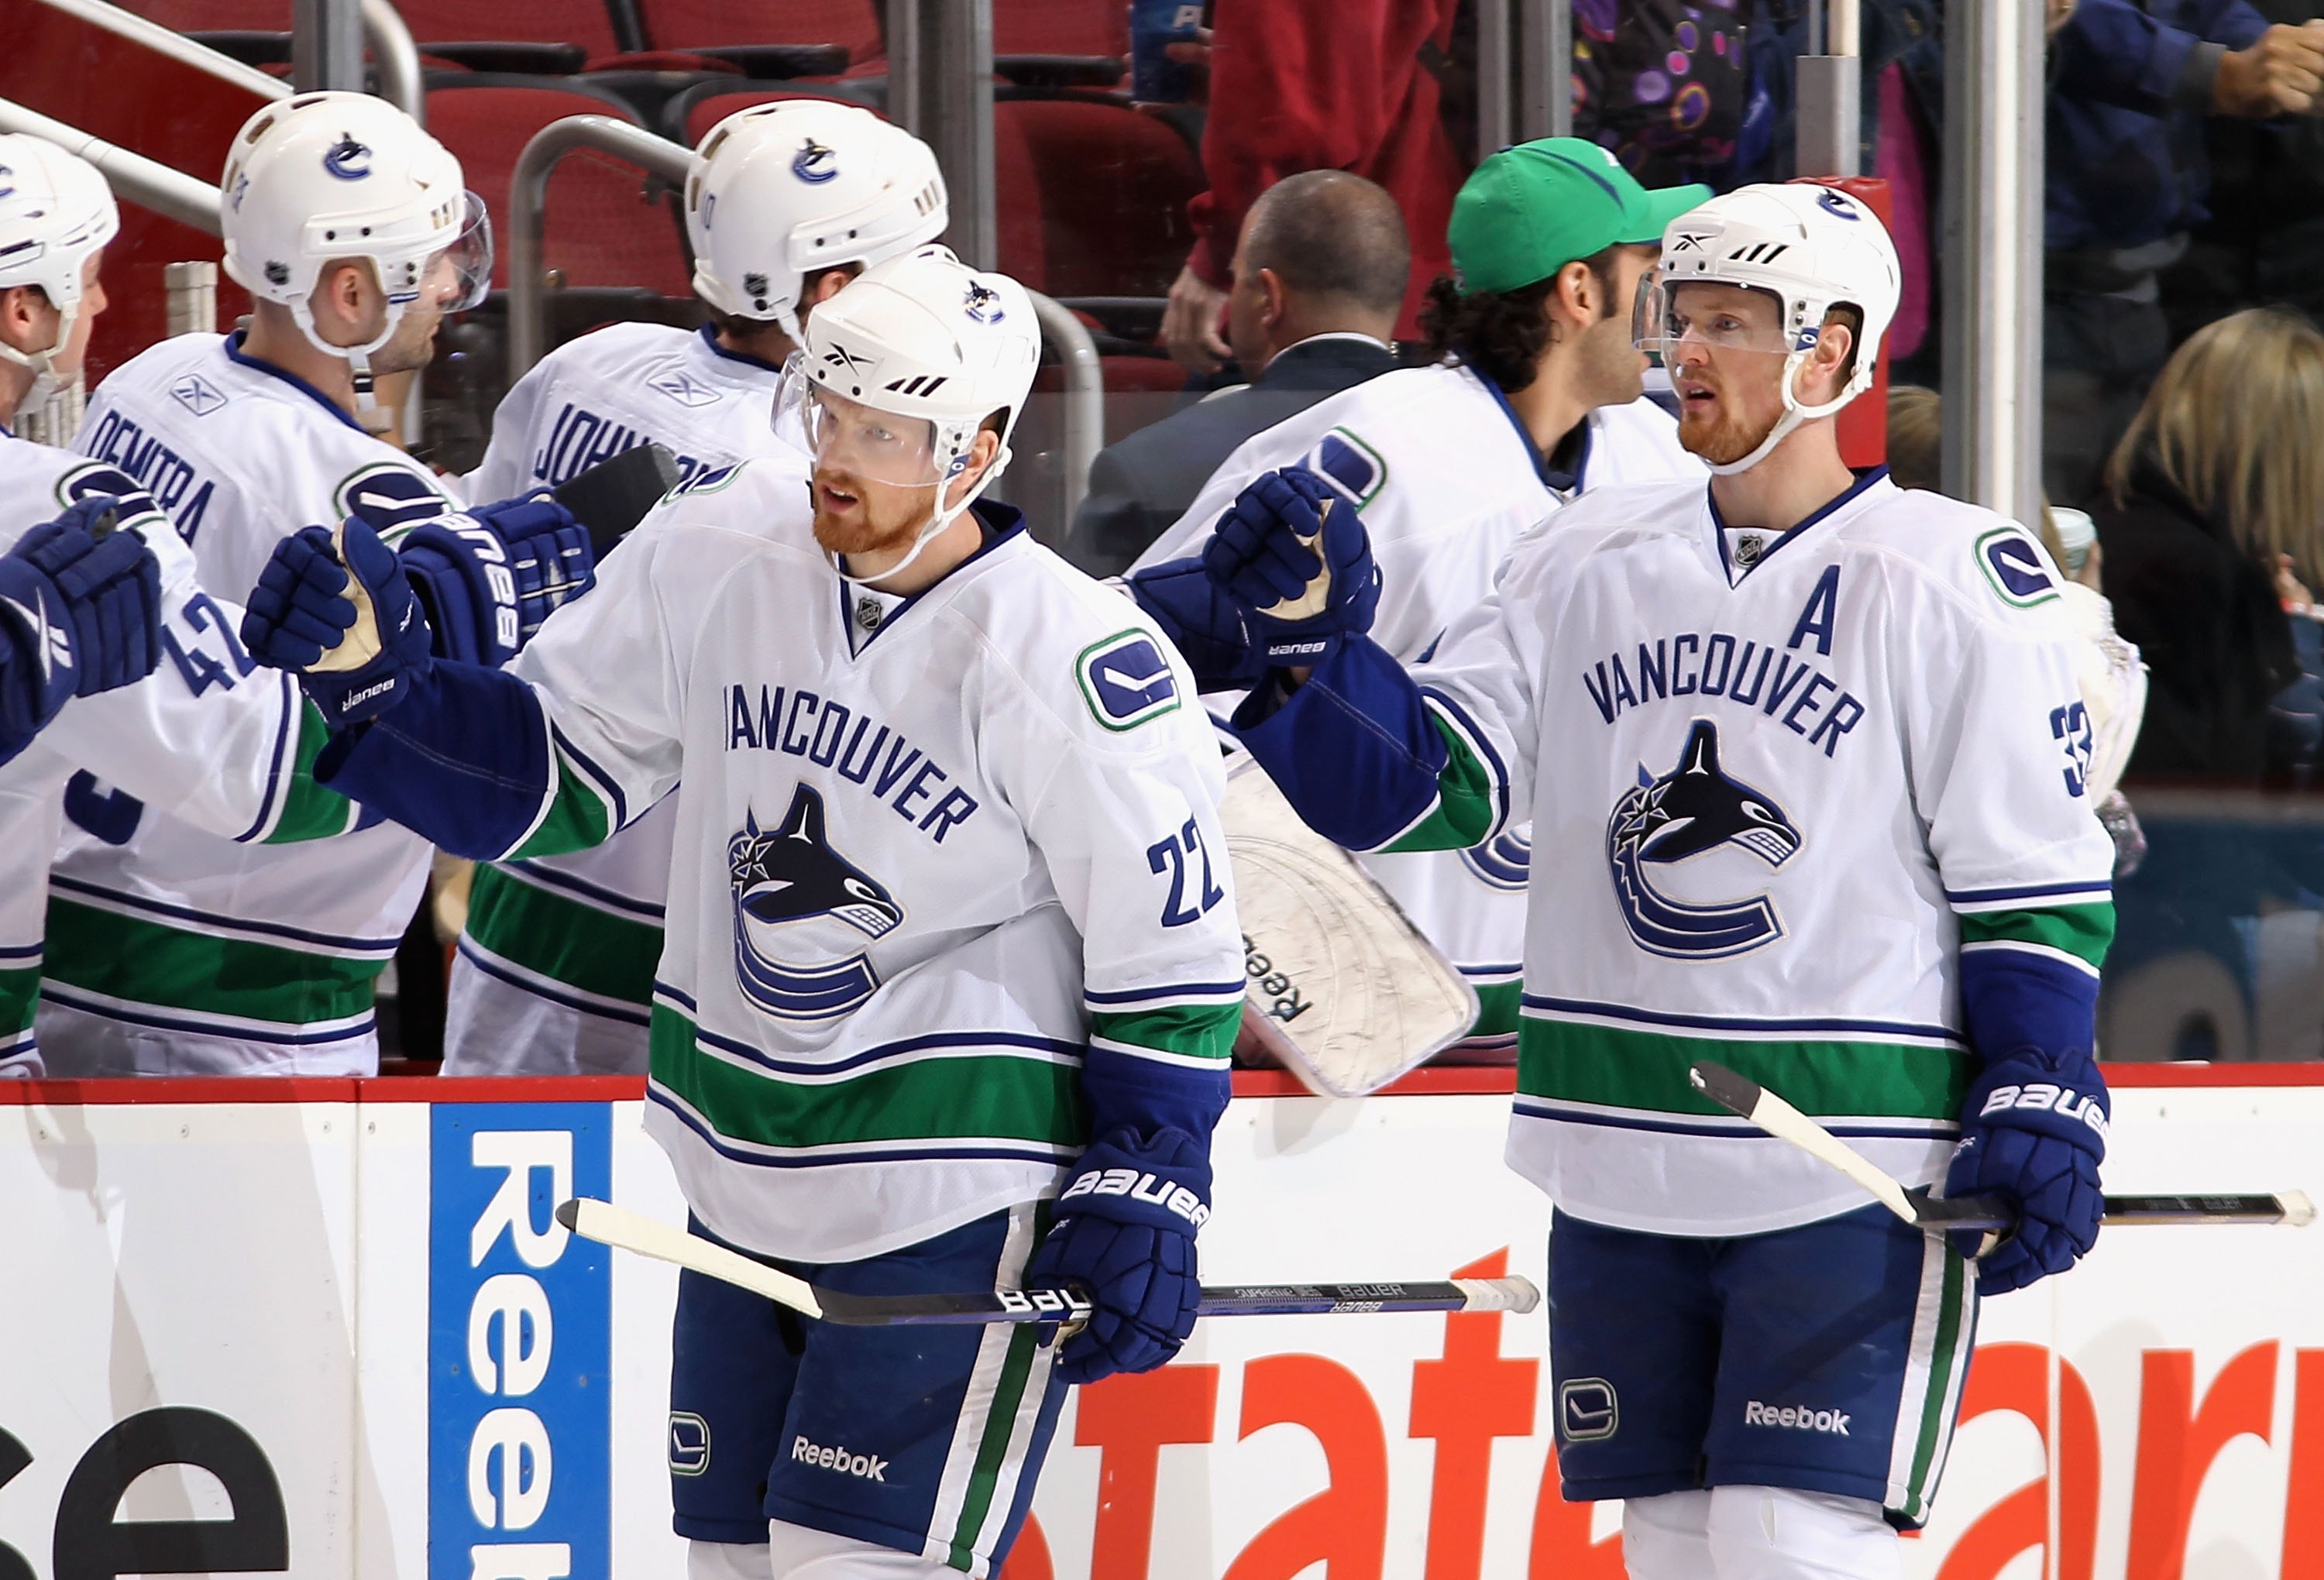 GLENDALE, AZ - MARCH 10:  Daniel Sedin #22 and Henrik Sedin #33 of the Vancouver Canucks celebrate with teammates after scoring during the NHL game against the Phoenix Coyotes at Jobing.com Arena on March 10, 2010 in Glendale, Arizona.  The Coyotes defeat